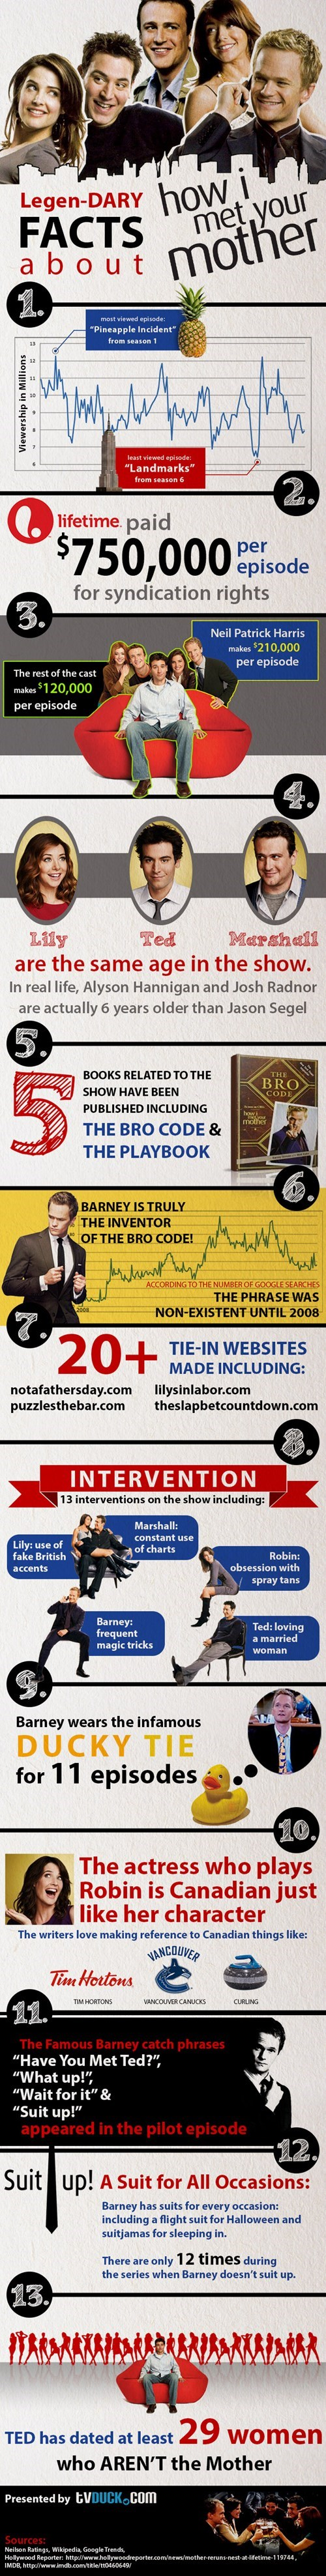 Legen-DARY facts about How I Met Your Mother